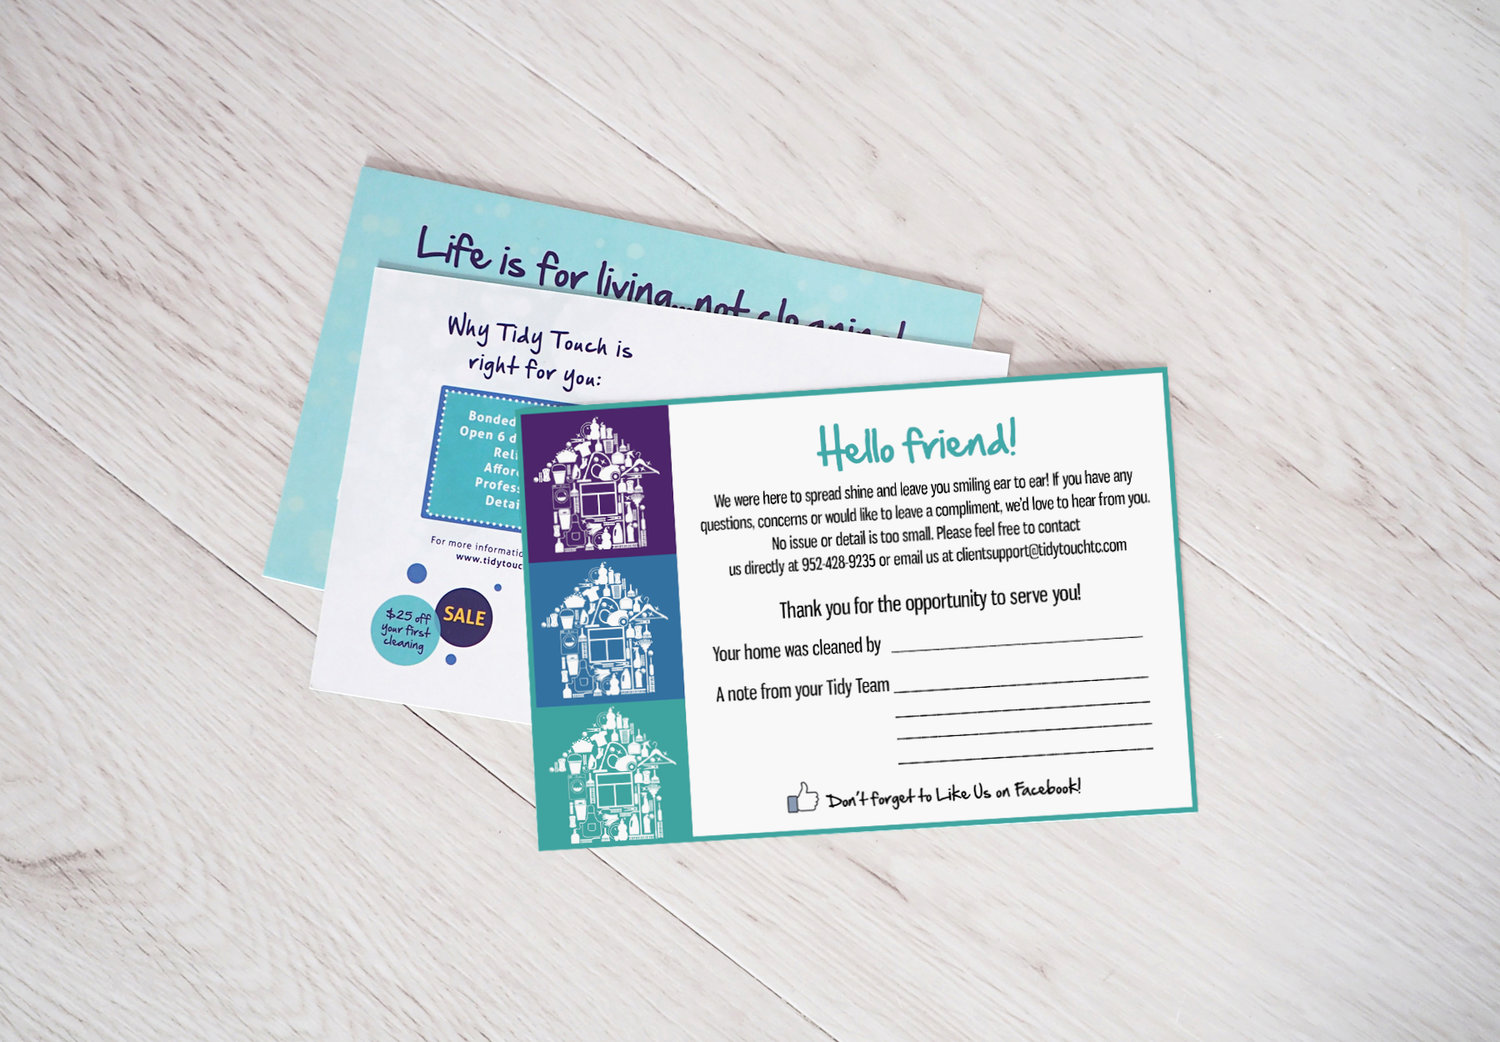 Postcards and Leave-Behinds - These pieces were created to help solve the problem of getting online reviews and ratings to help grow online booking.